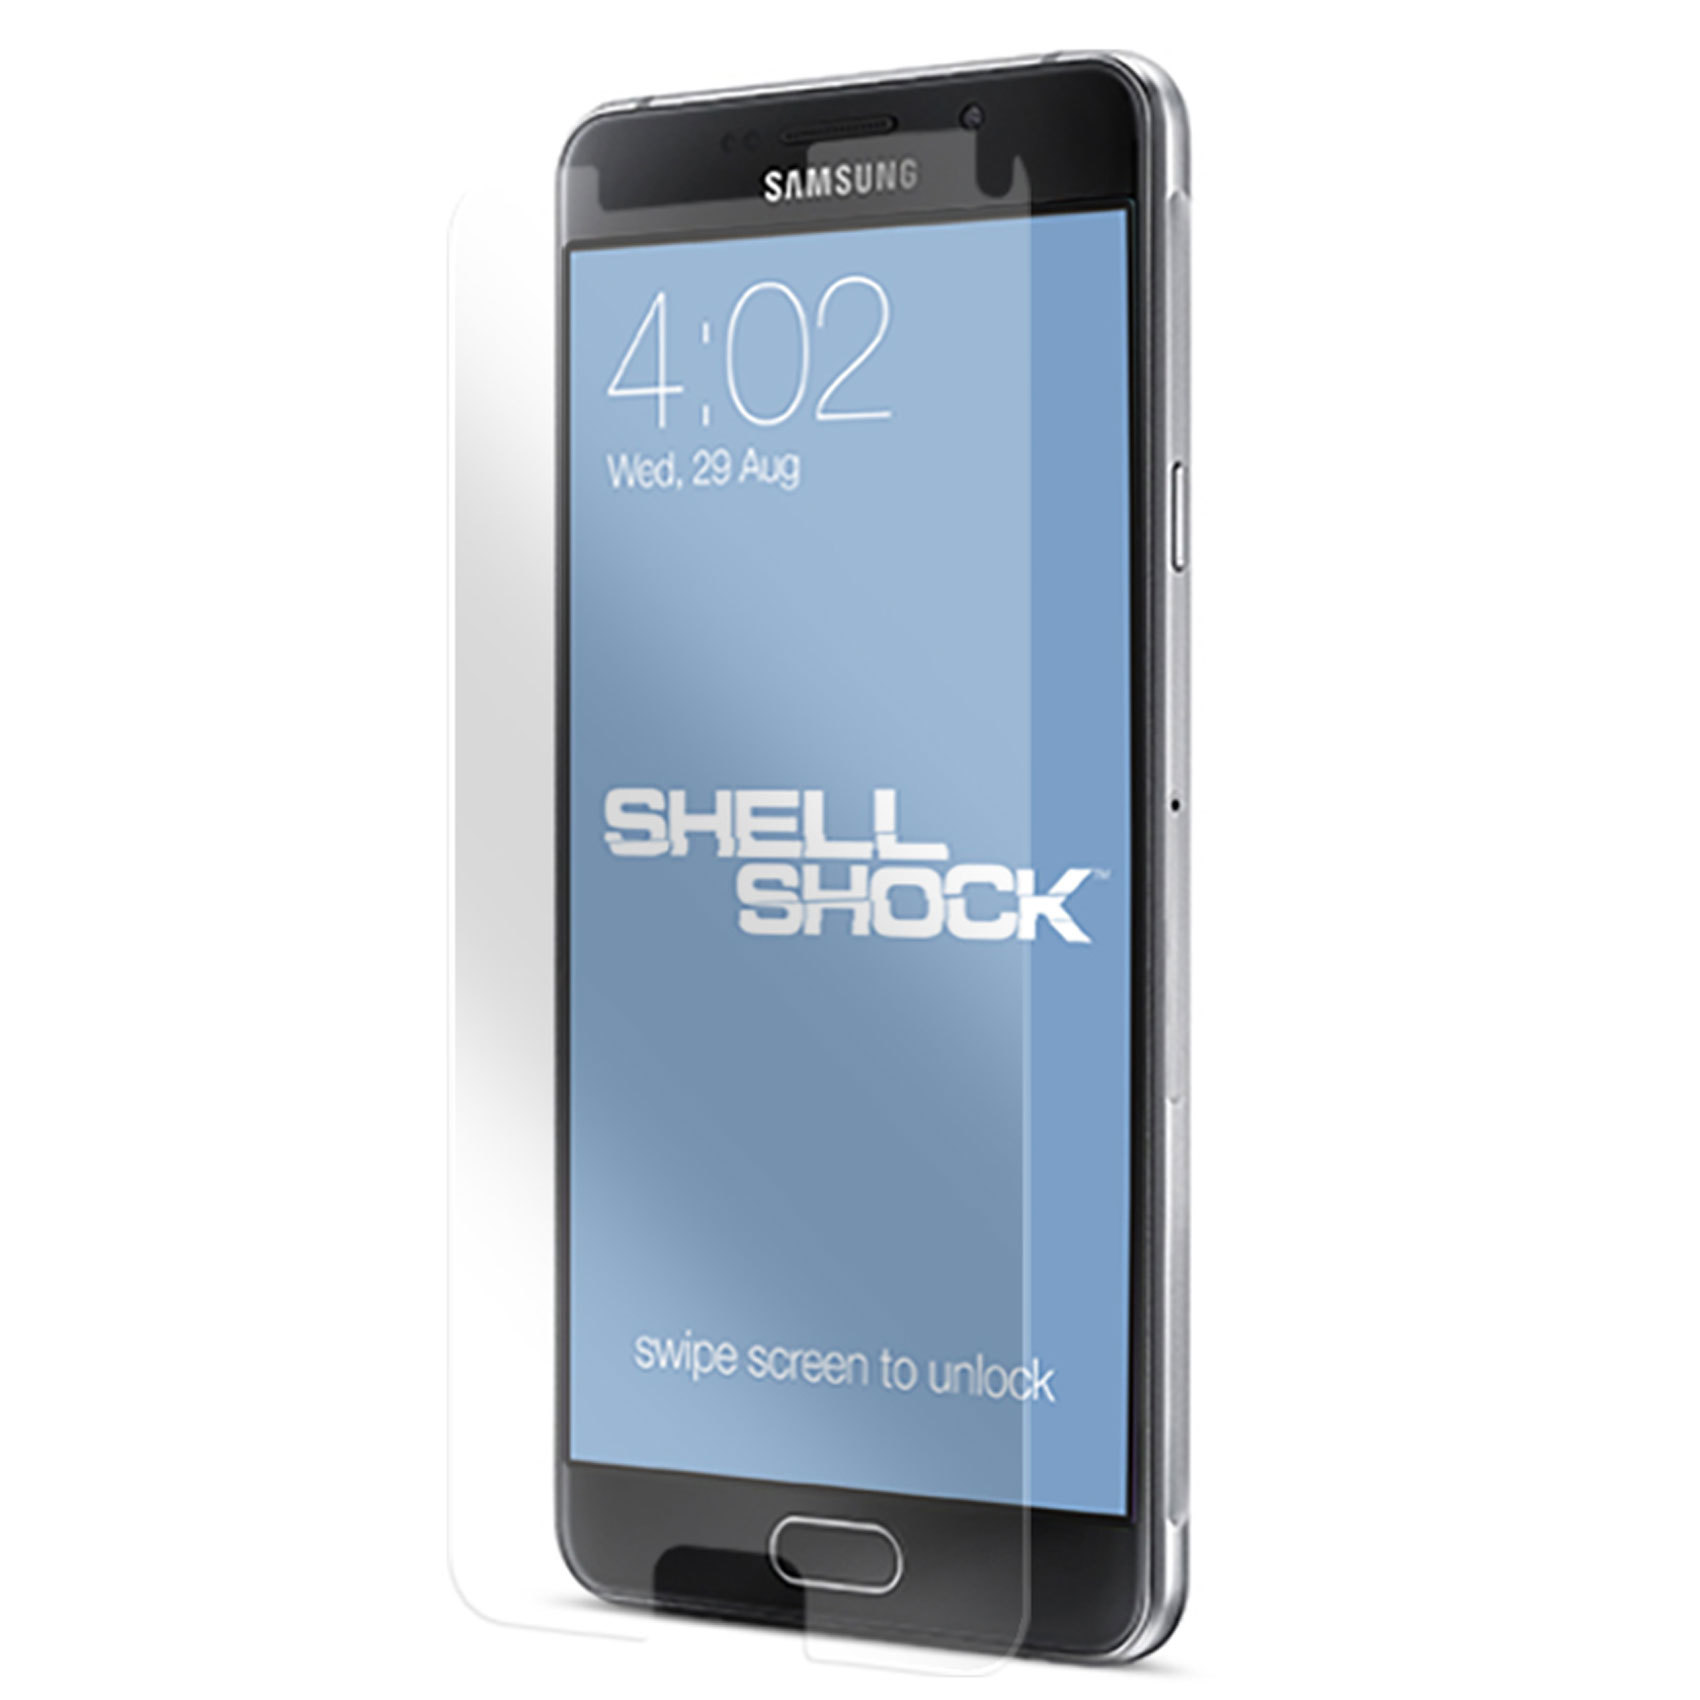 CELL SCREEN PROT GLXY S7 SHELL SHCK